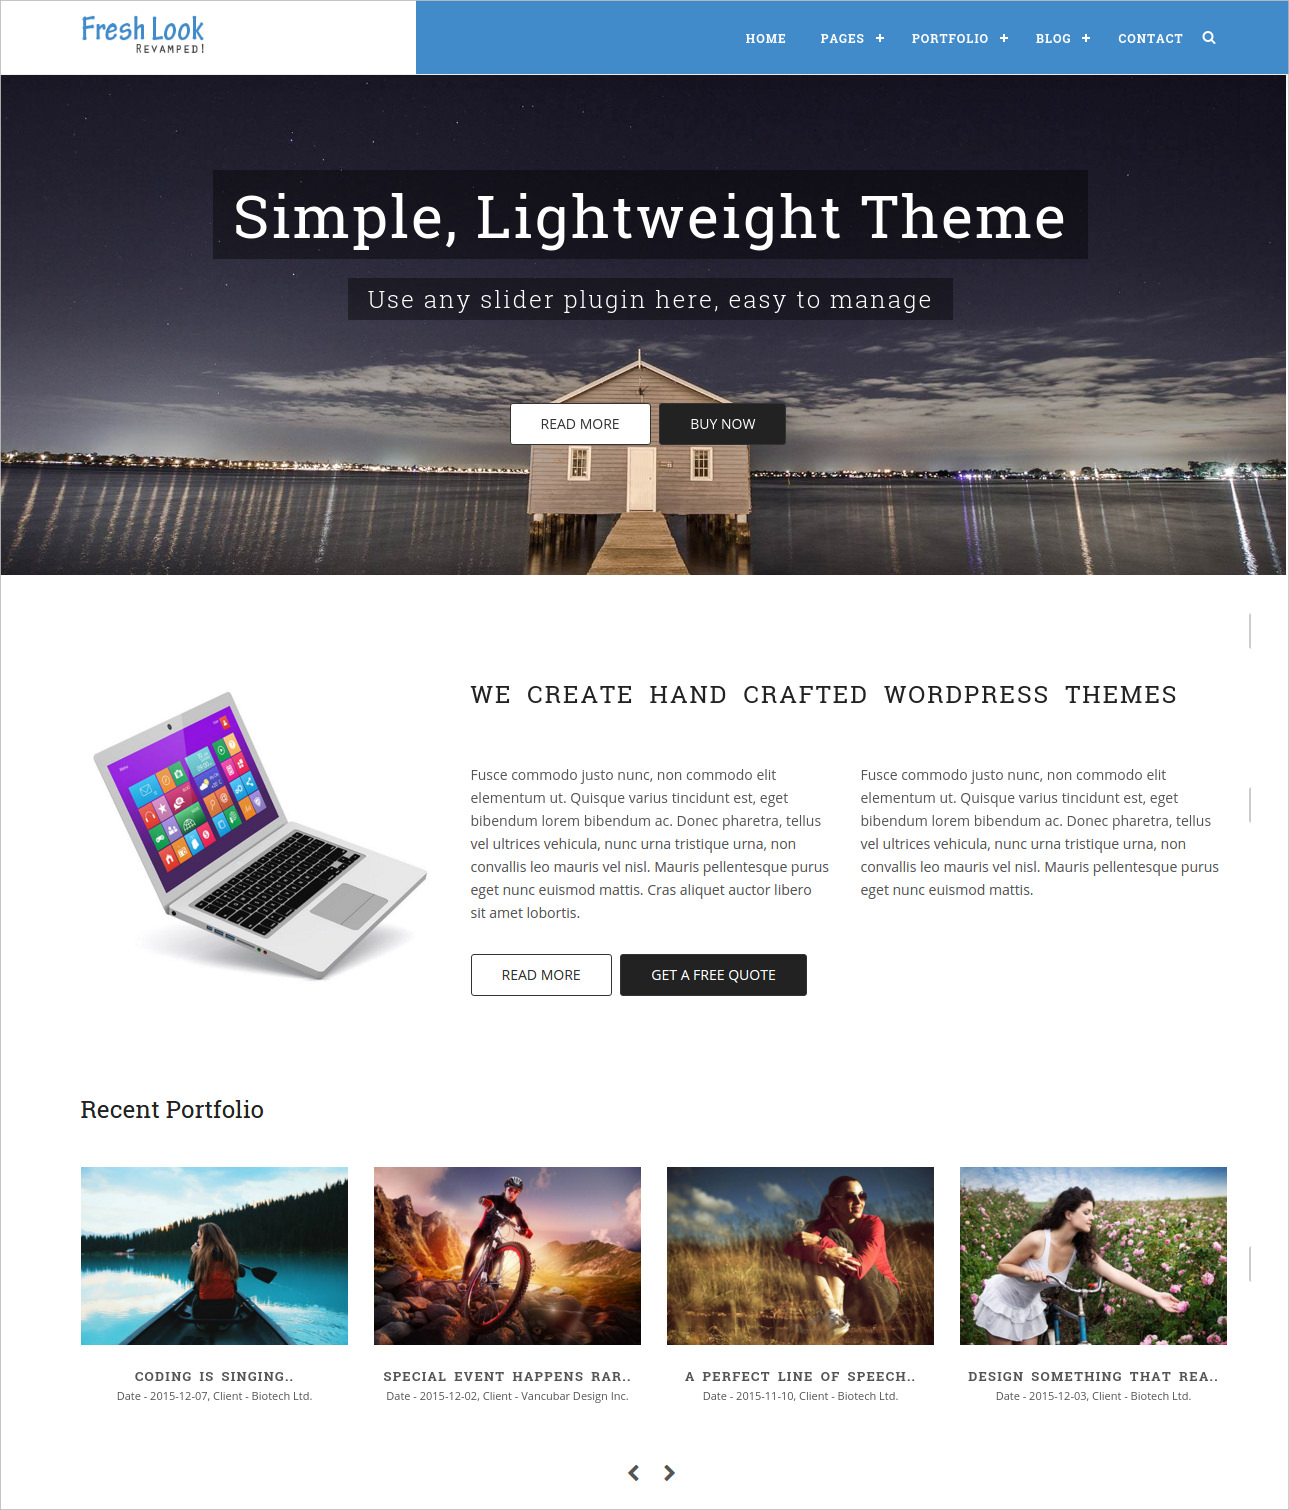 Fresh Look Business WordPress Theme - $49